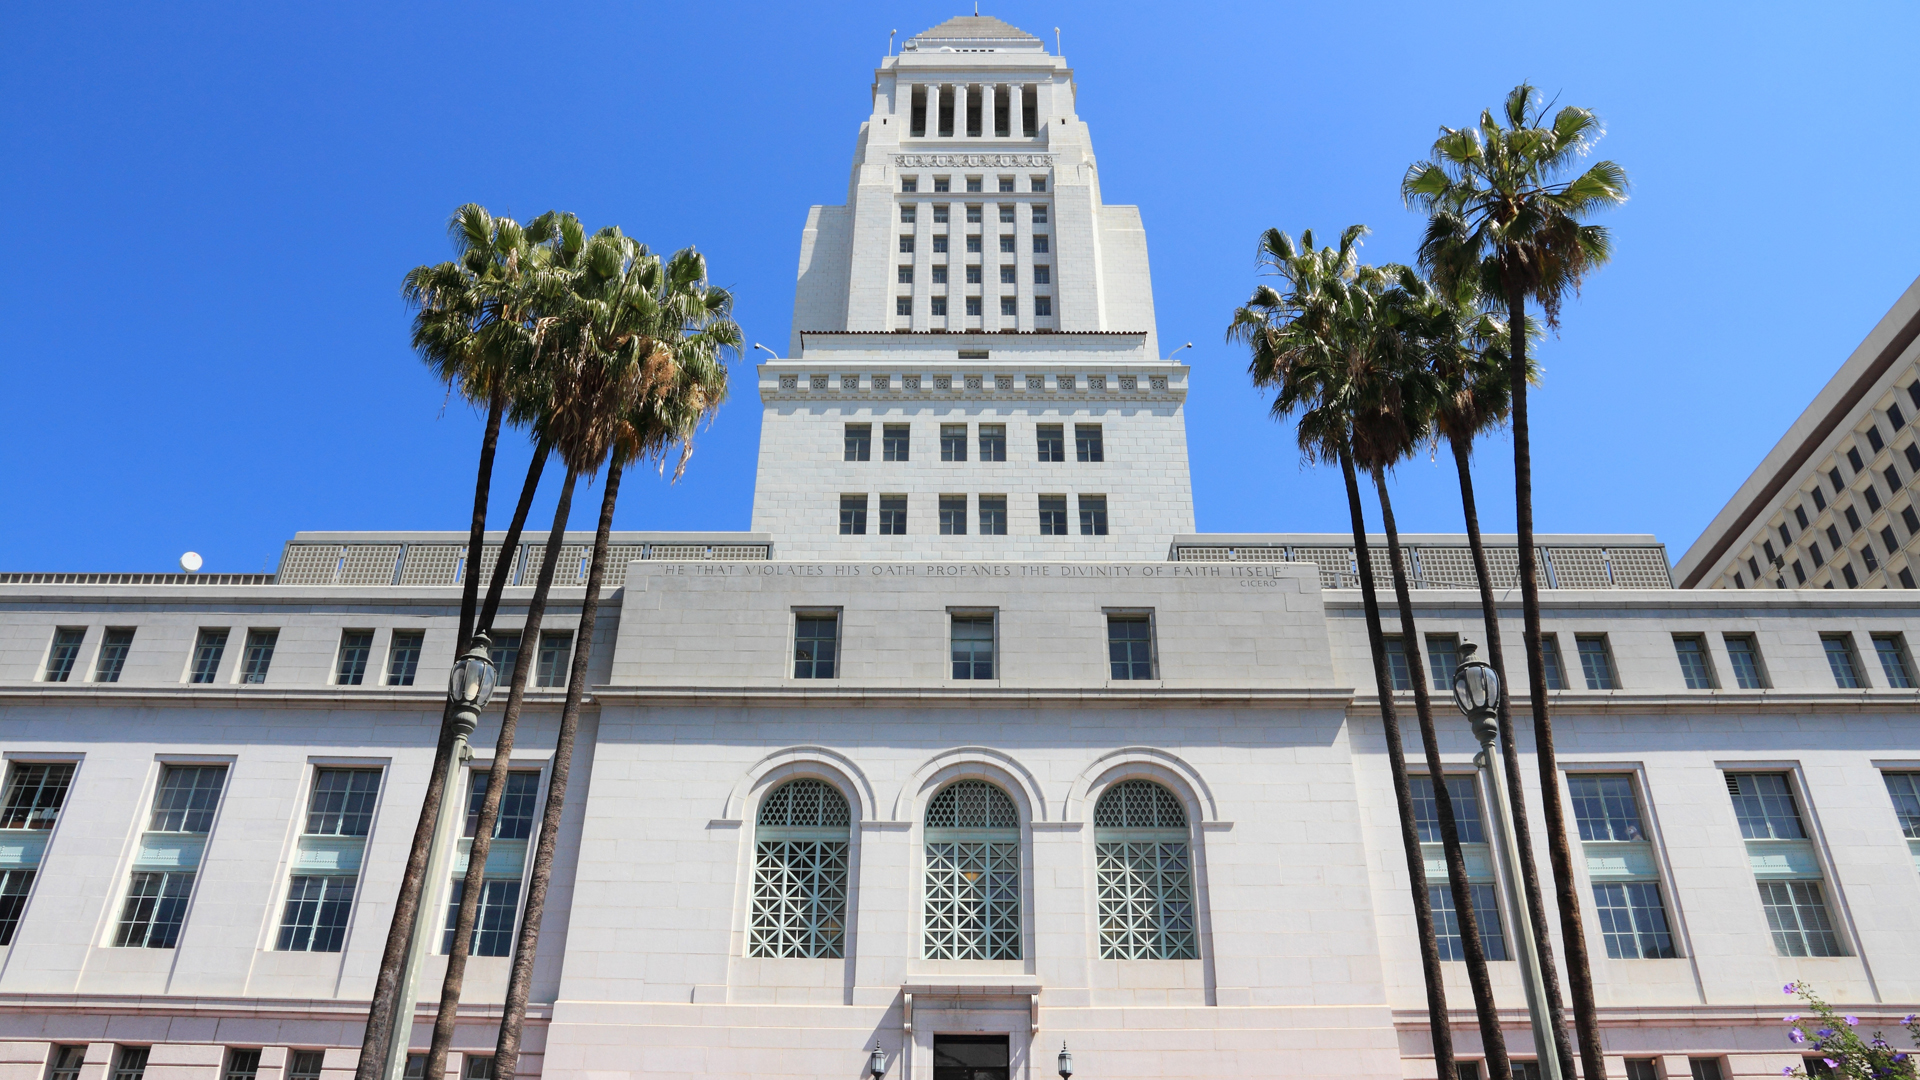 Los Angeles City Hall is seen in an undated photo. (iStock / Getty Images Plus)